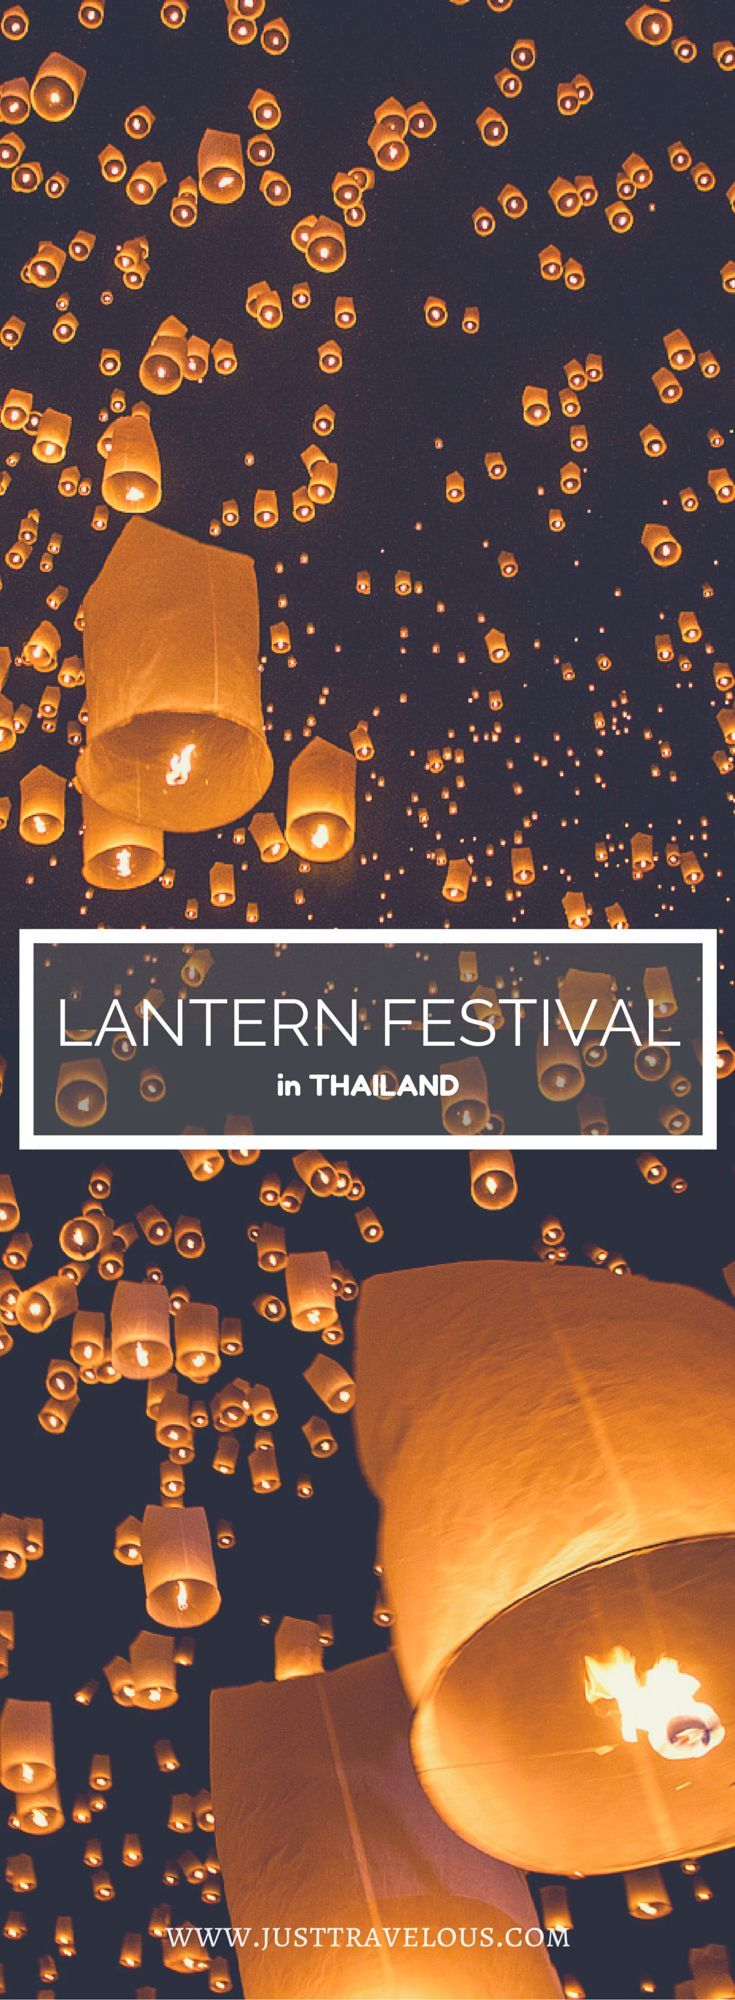 The Yee Peng festival in Northern Thailand is the lantern Festival every backpacker is dreaming about. I've been there and I'll tell you where you can raise your lantern in Chiang Mai. http://fancytemplestore.com